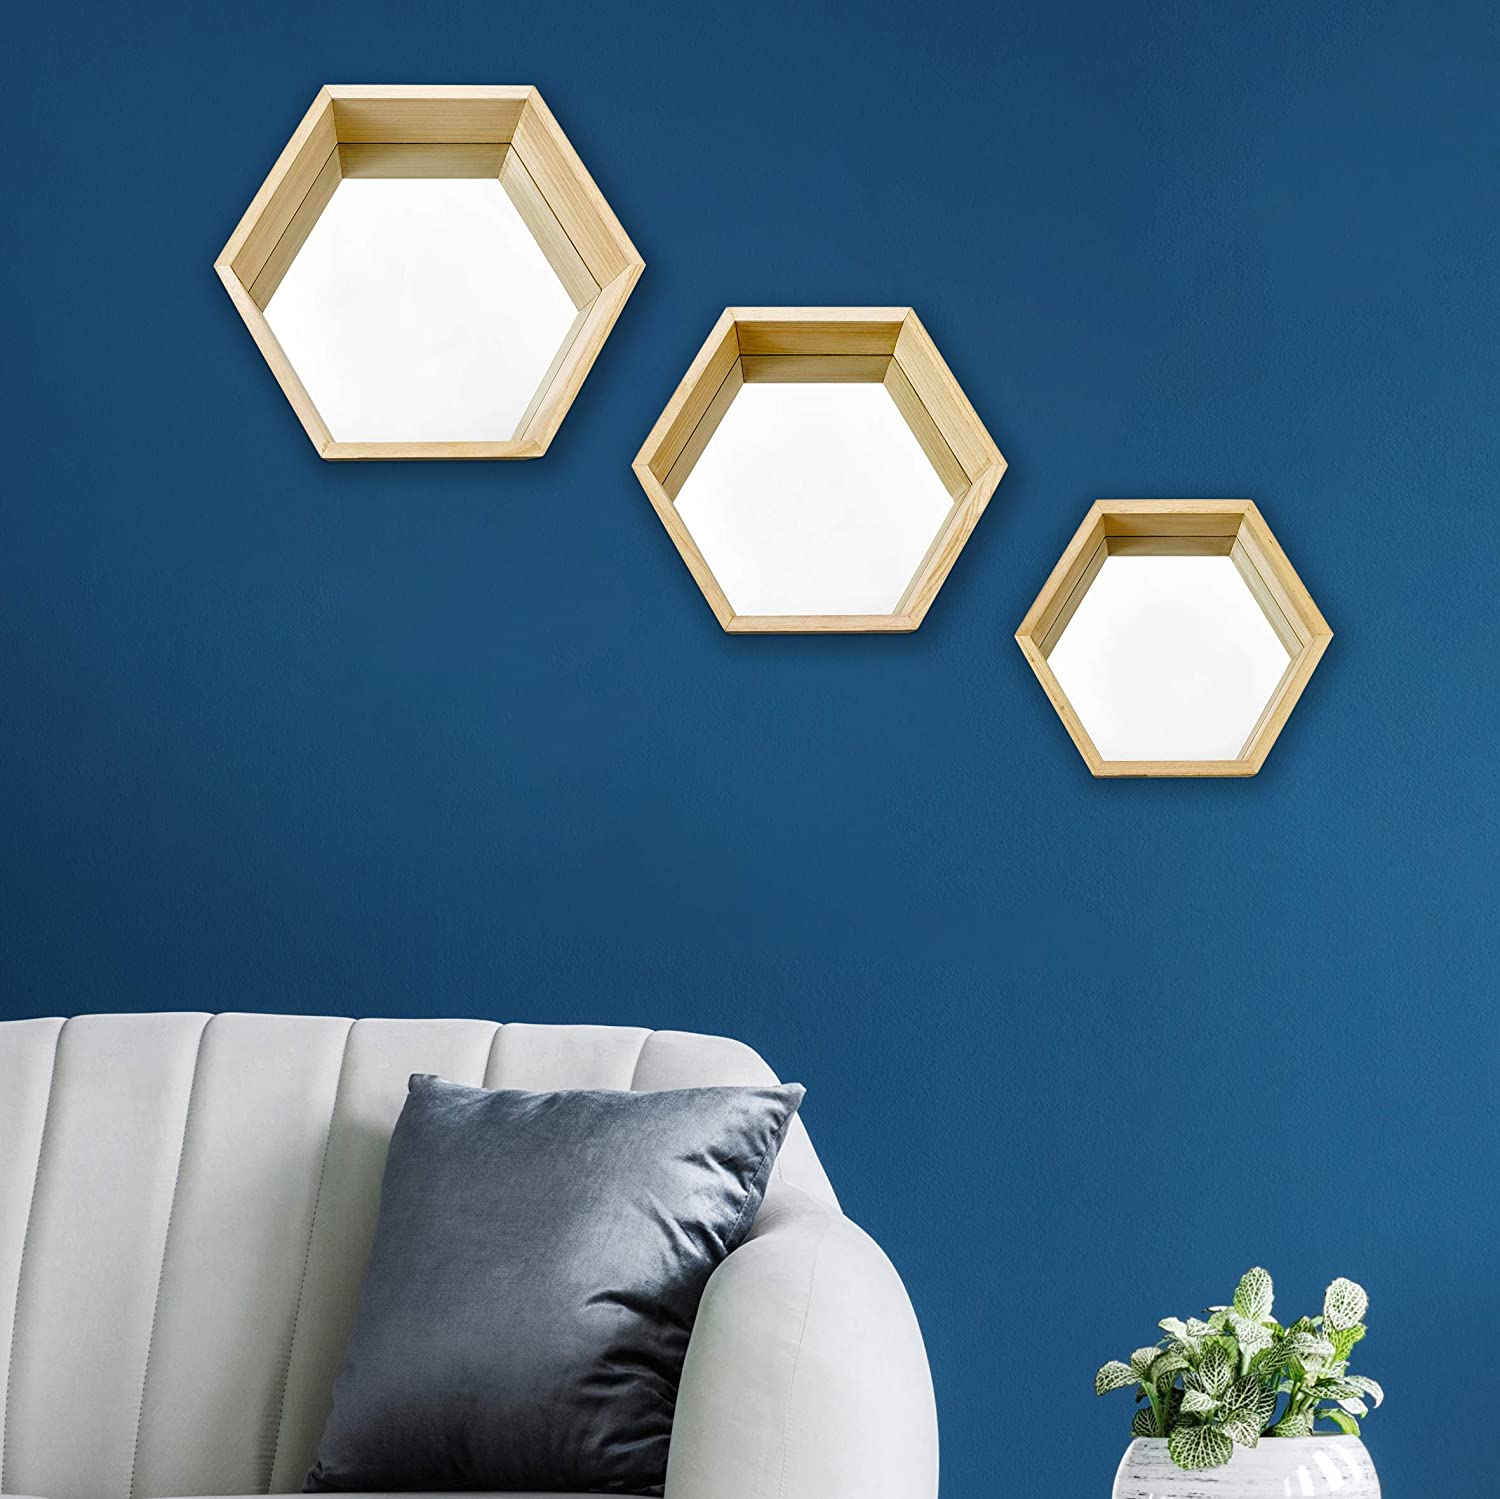 PARNOO Wall Mirror Set of 3 Hexagonal Wood Frame Mirrors | Wall Mounted Mirrors | Geometric Mirror Set for Wall Décor